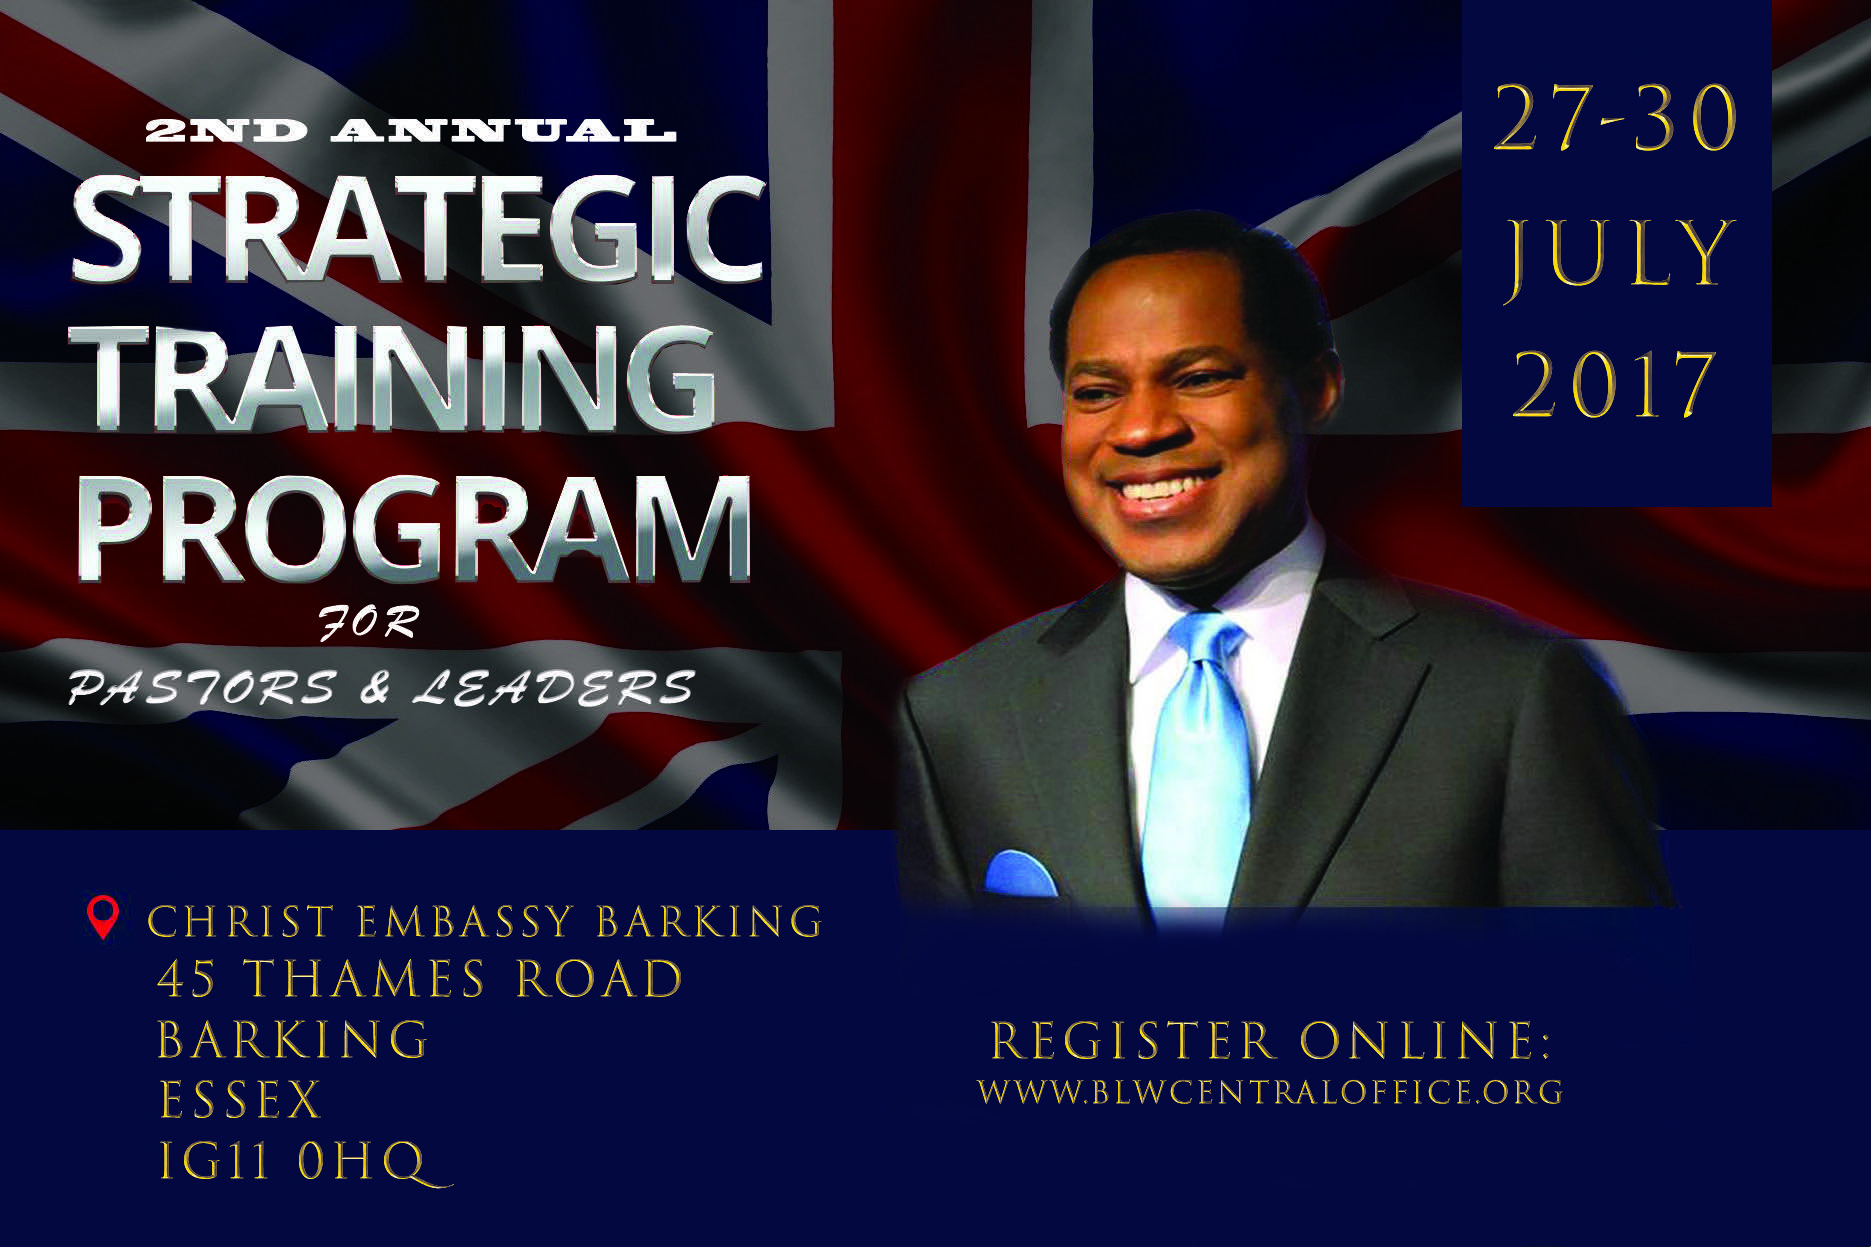 Strategic Training Program for Pastors & Leaders 2017